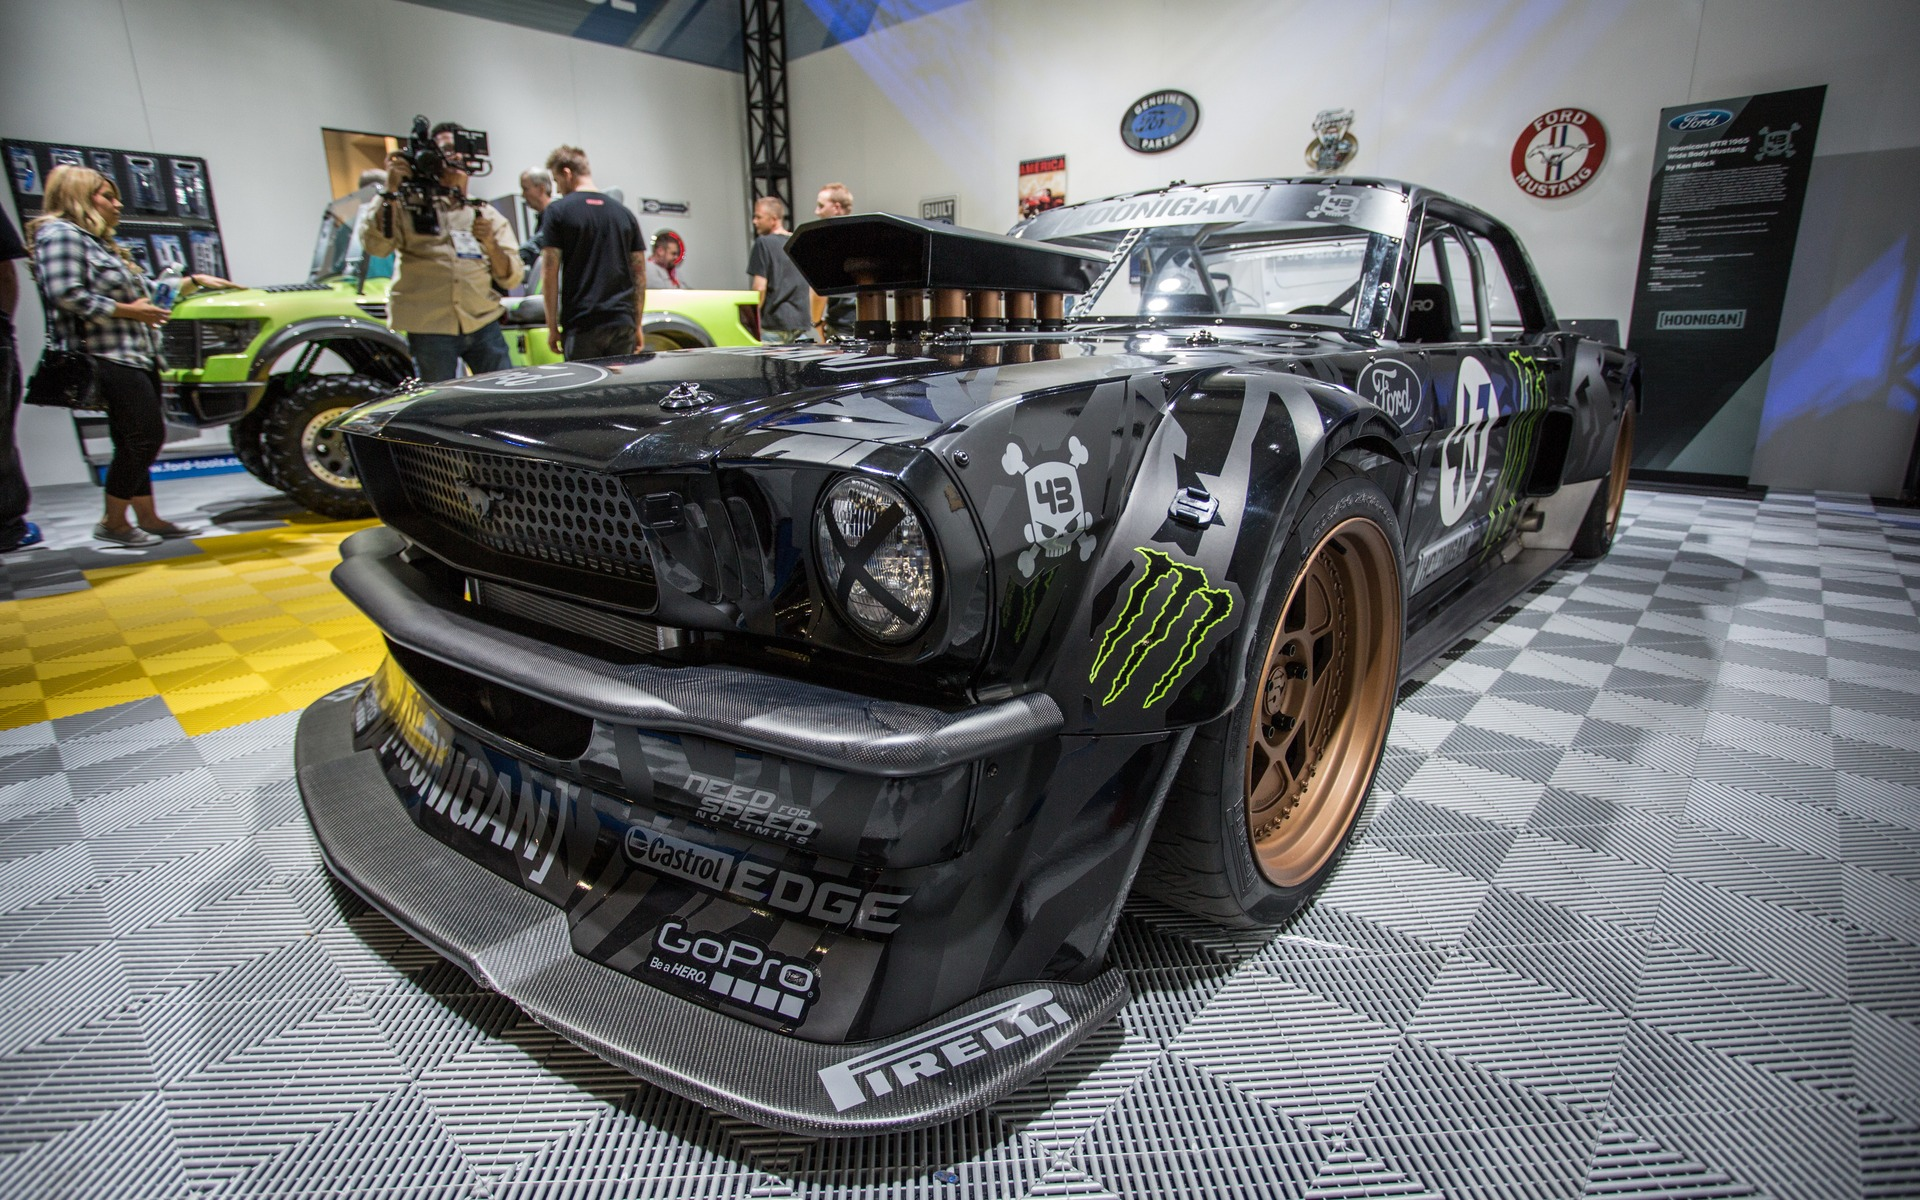 Ken Block S Next Ride The Car Guide